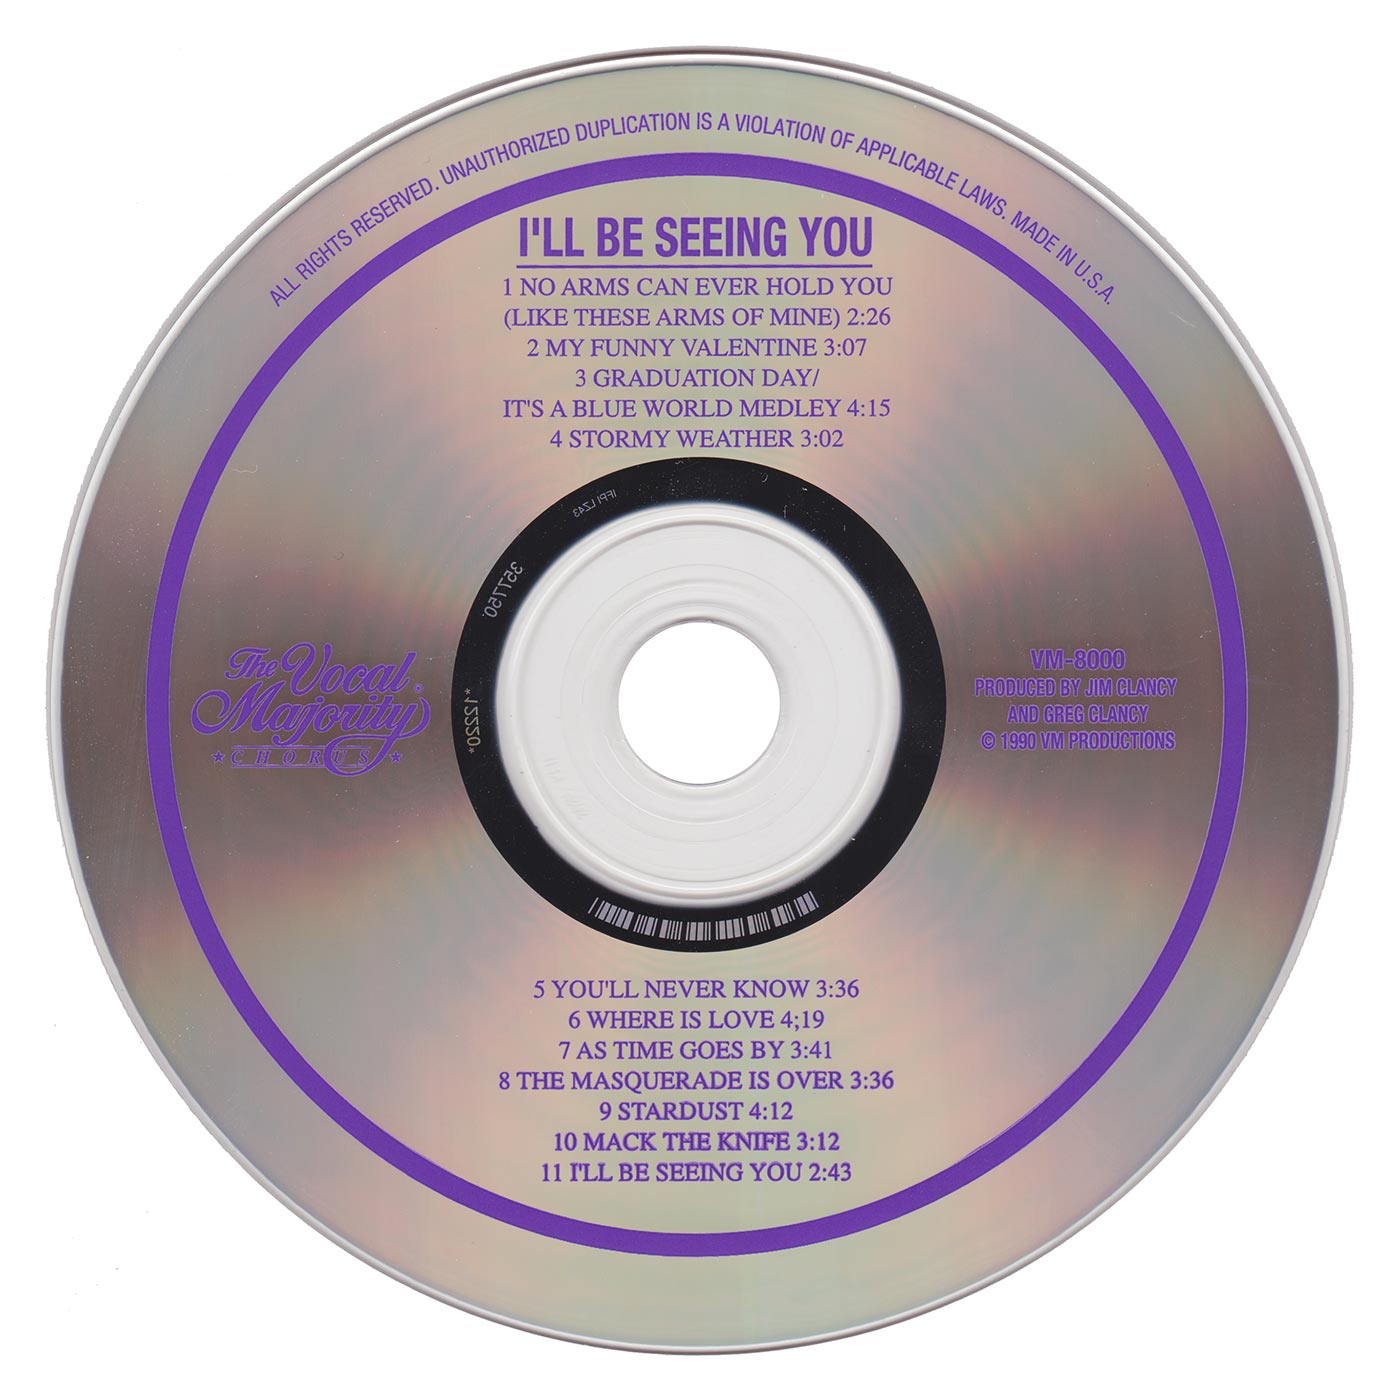 Disc Art: I'll Be Seeing You